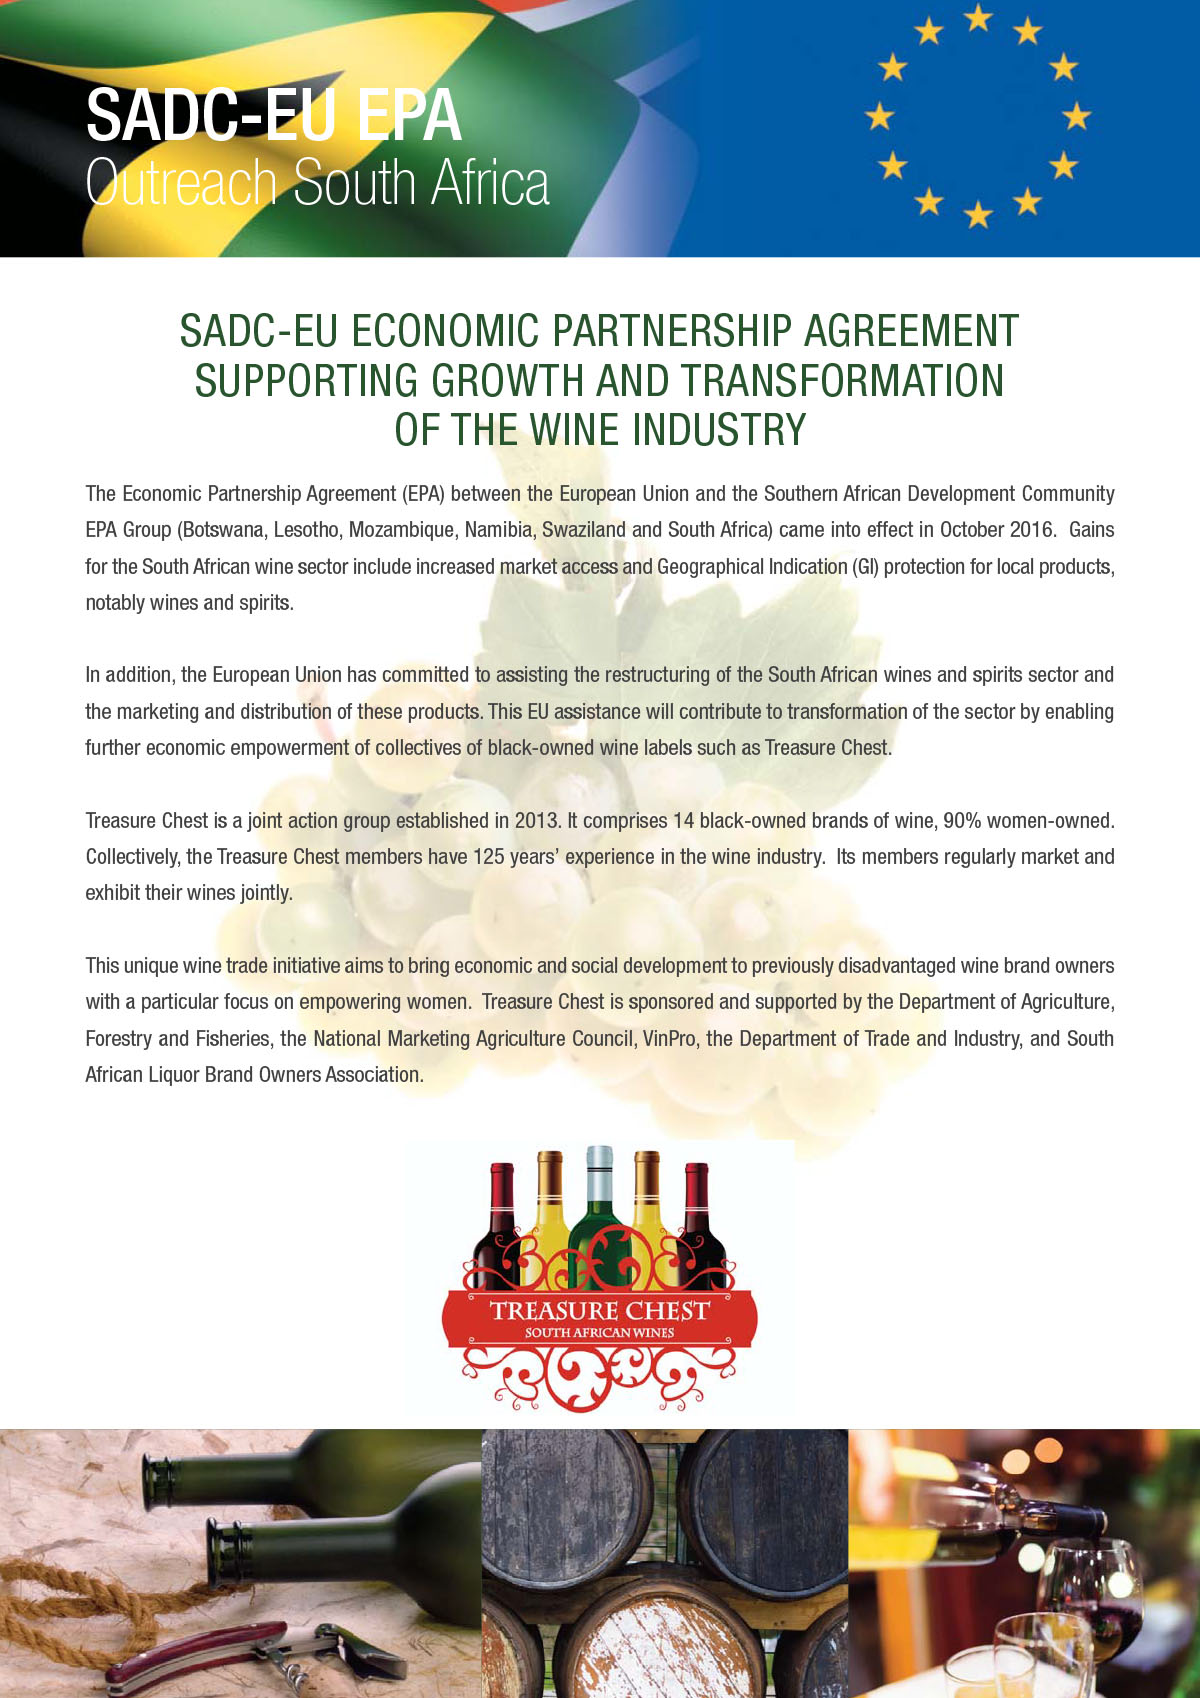 The wine industry and the SACD-EU EPA